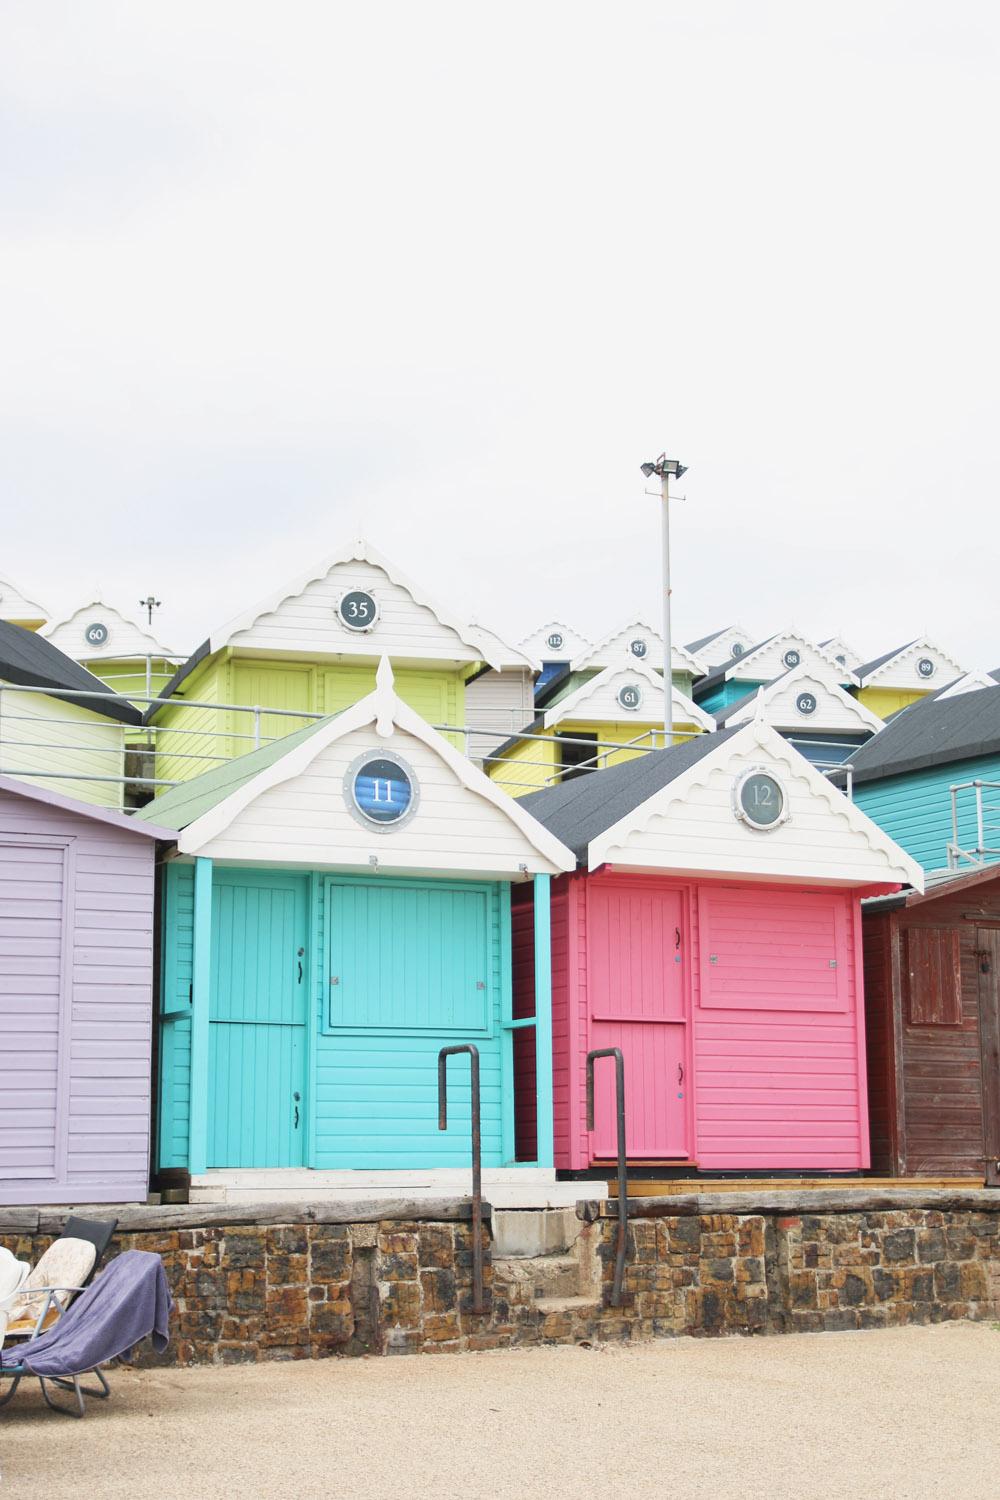 Walton-on-the-Naze Beach Huts, Essex